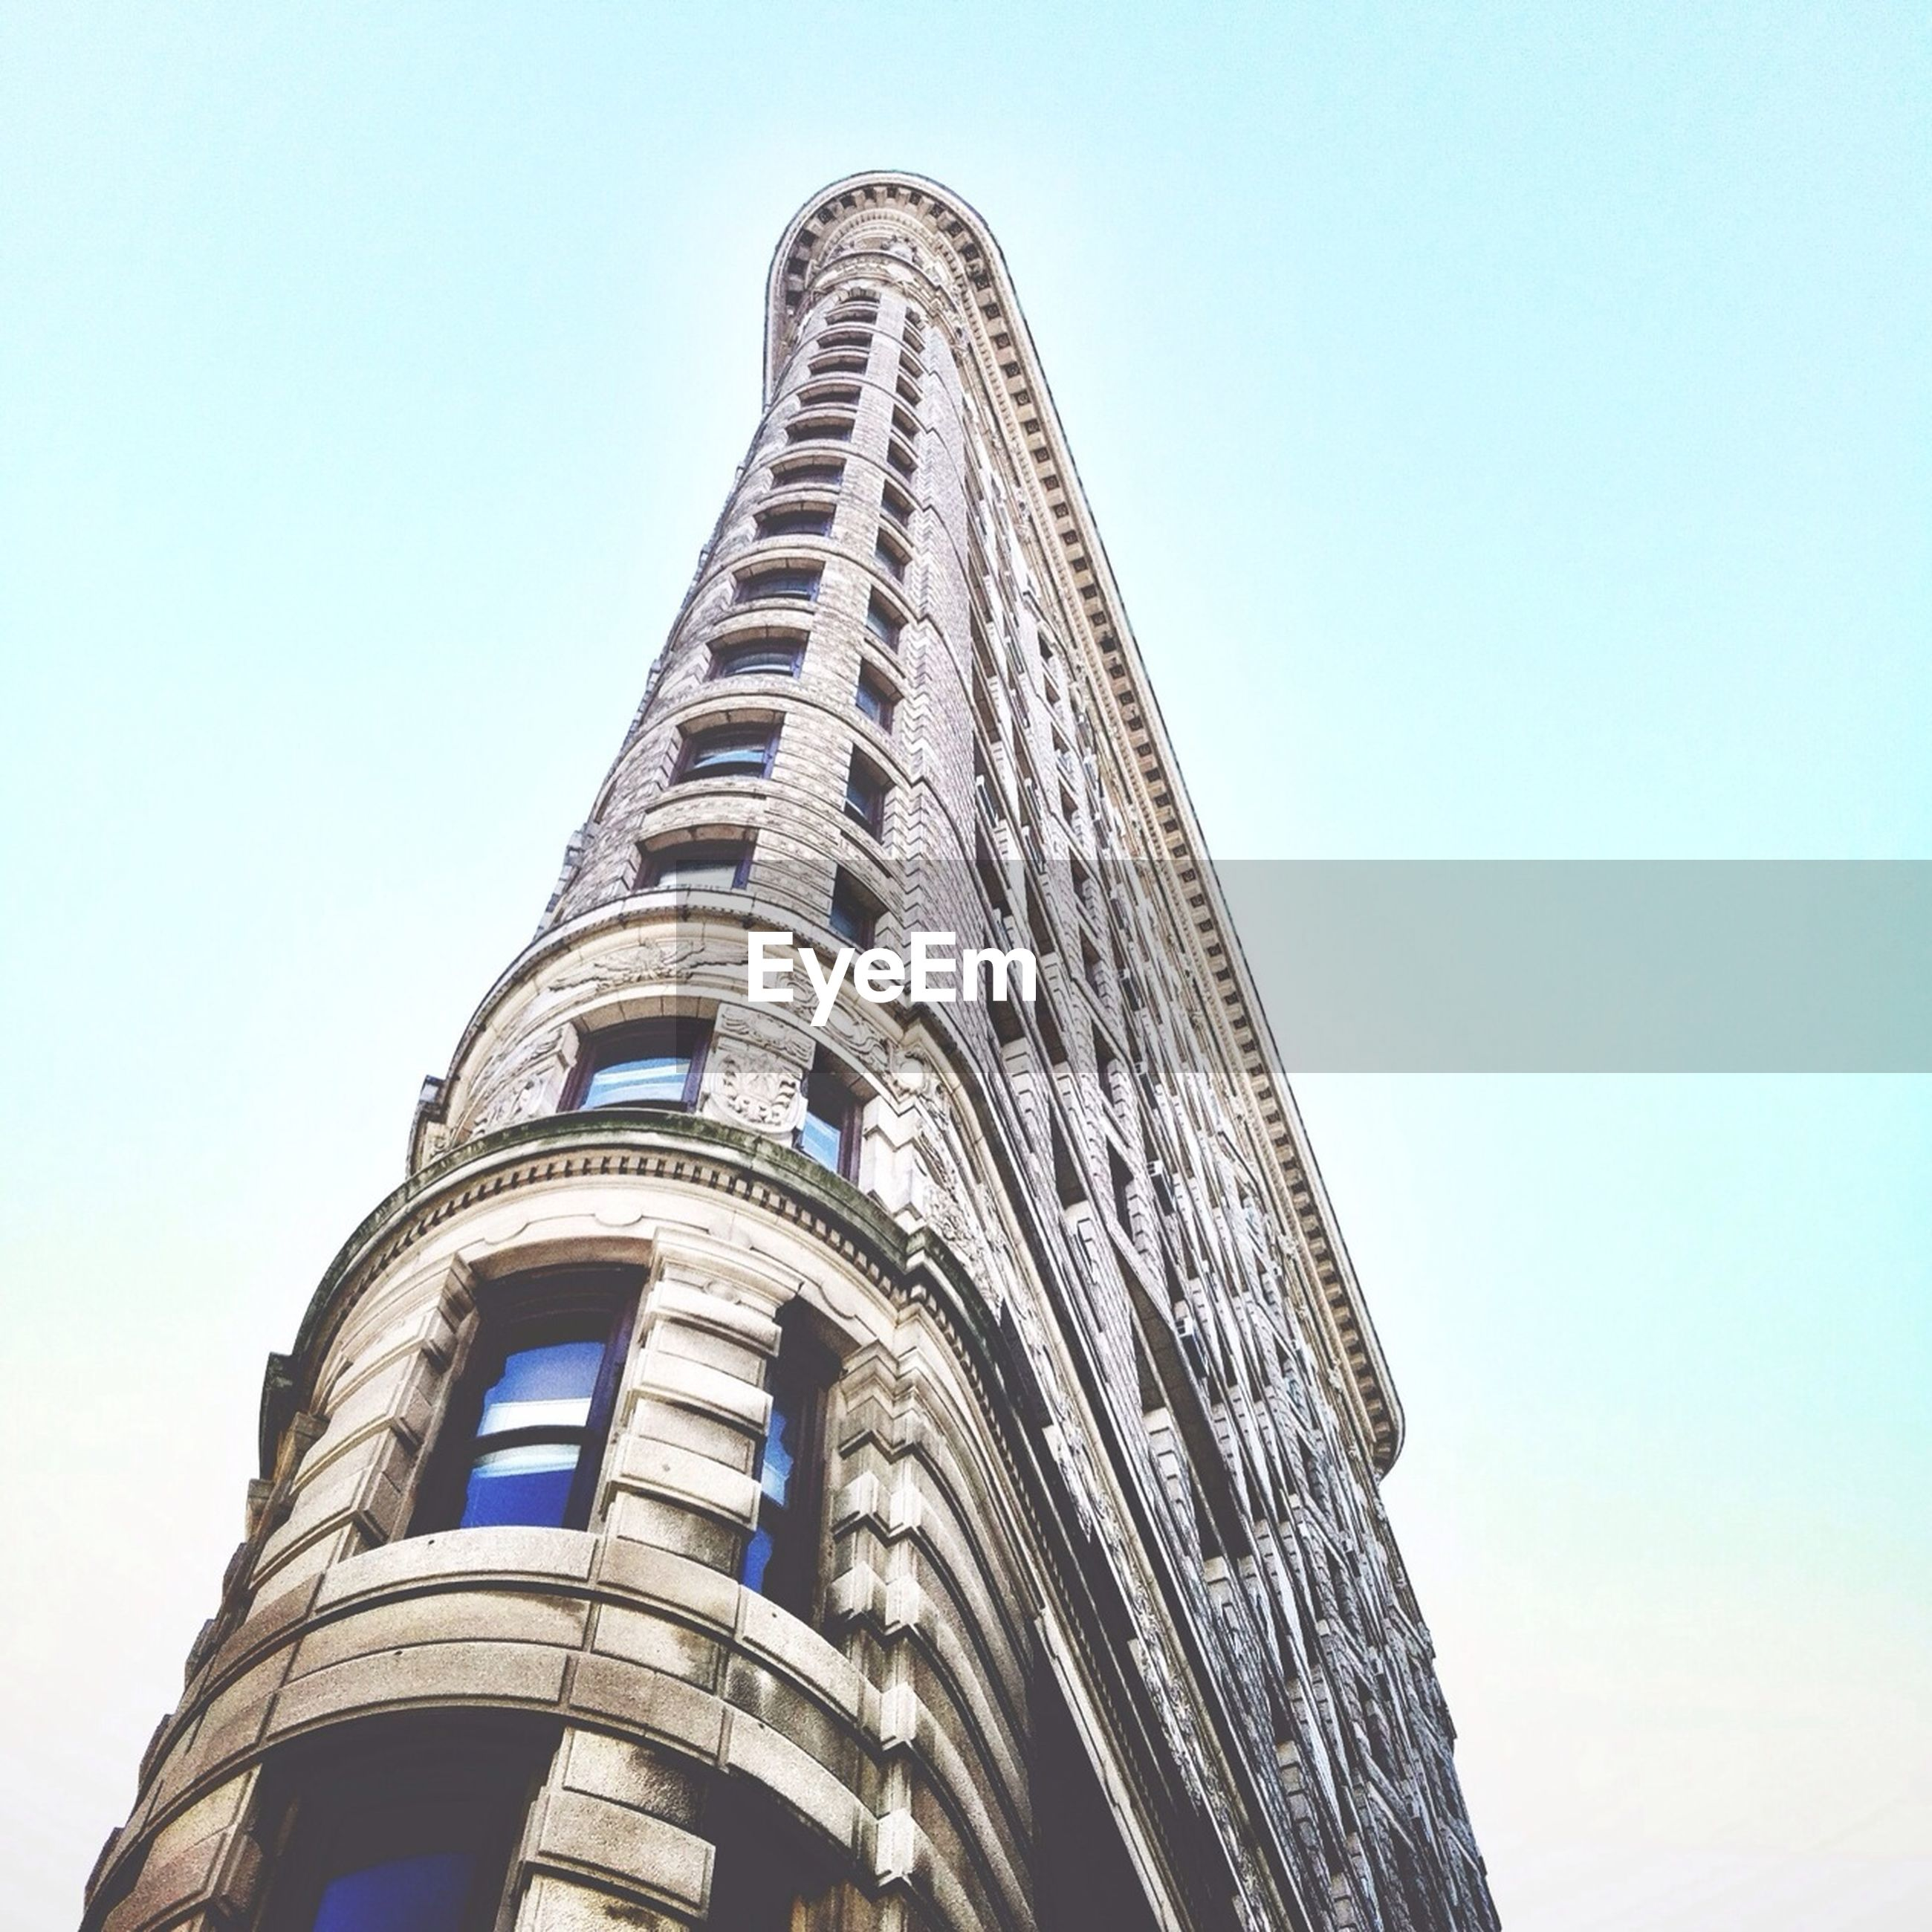 architecture, built structure, low angle view, clear sky, building exterior, tower, famous place, tall - high, international landmark, travel destinations, history, capital cities, copy space, tourism, blue, travel, day, city, outdoors, architectural feature